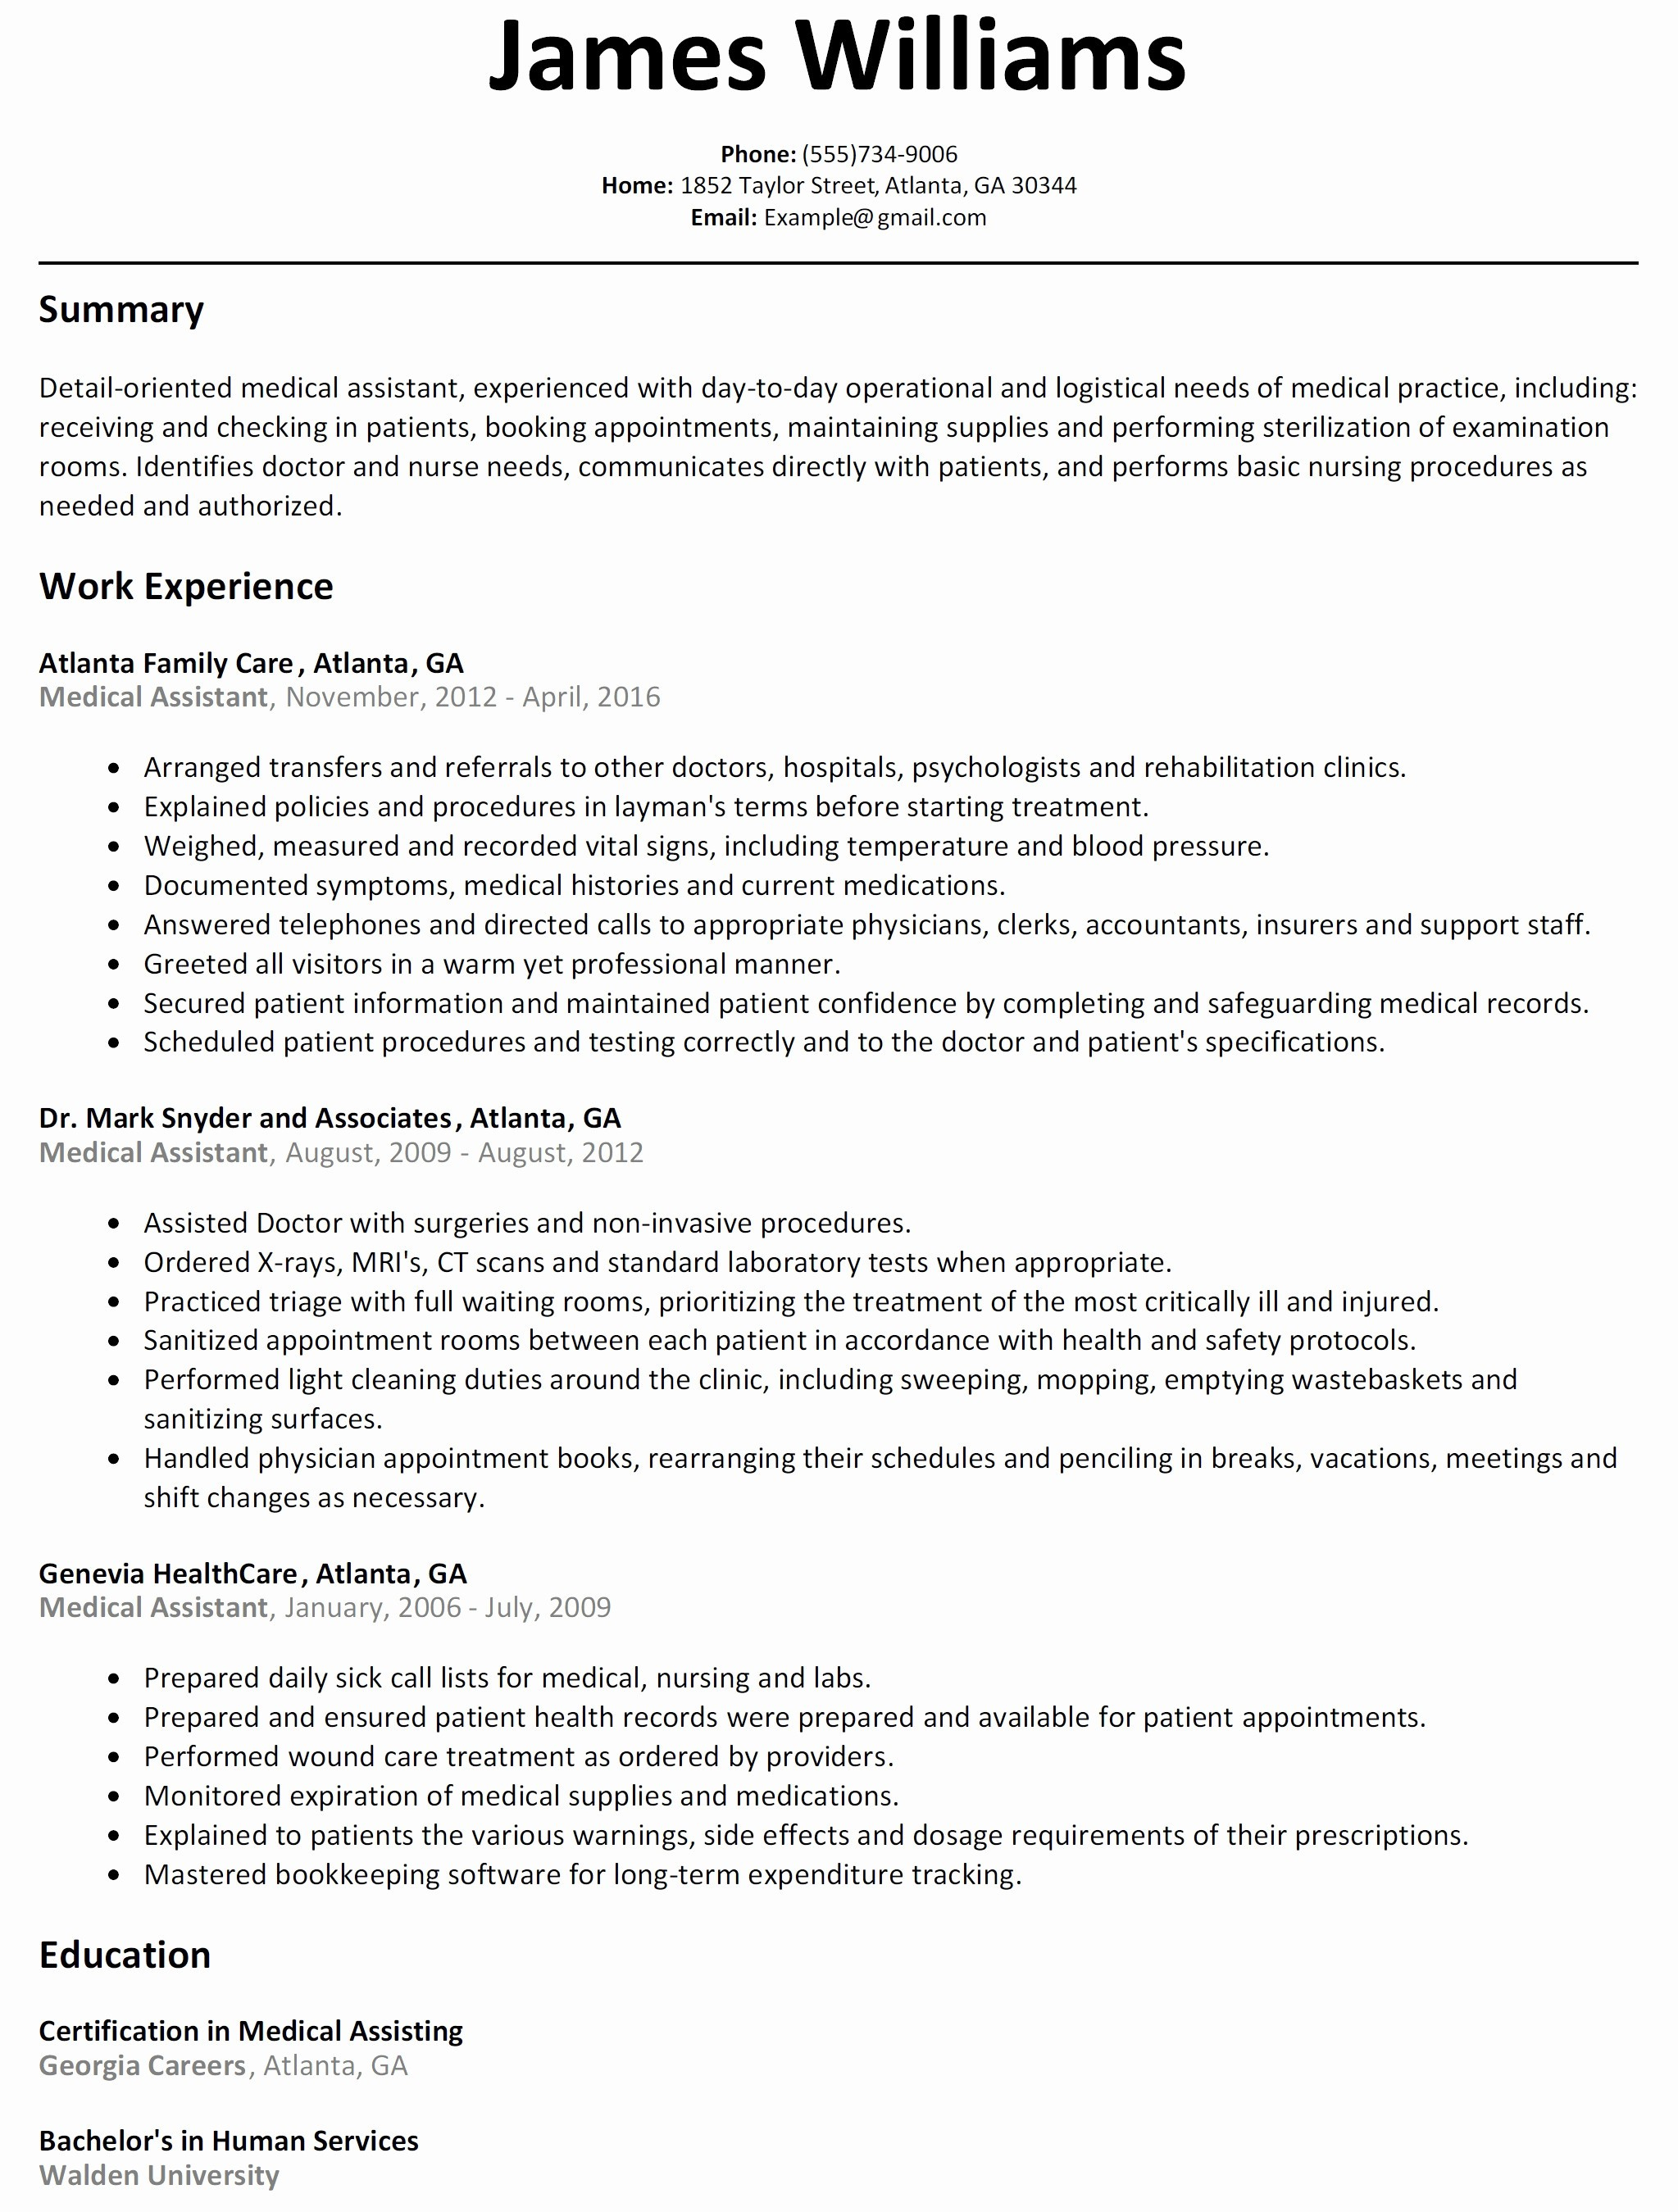 Word 2003 Resume Template - Resume Templates Word 2013 Luxury Word 2003 Resume Template – Resume